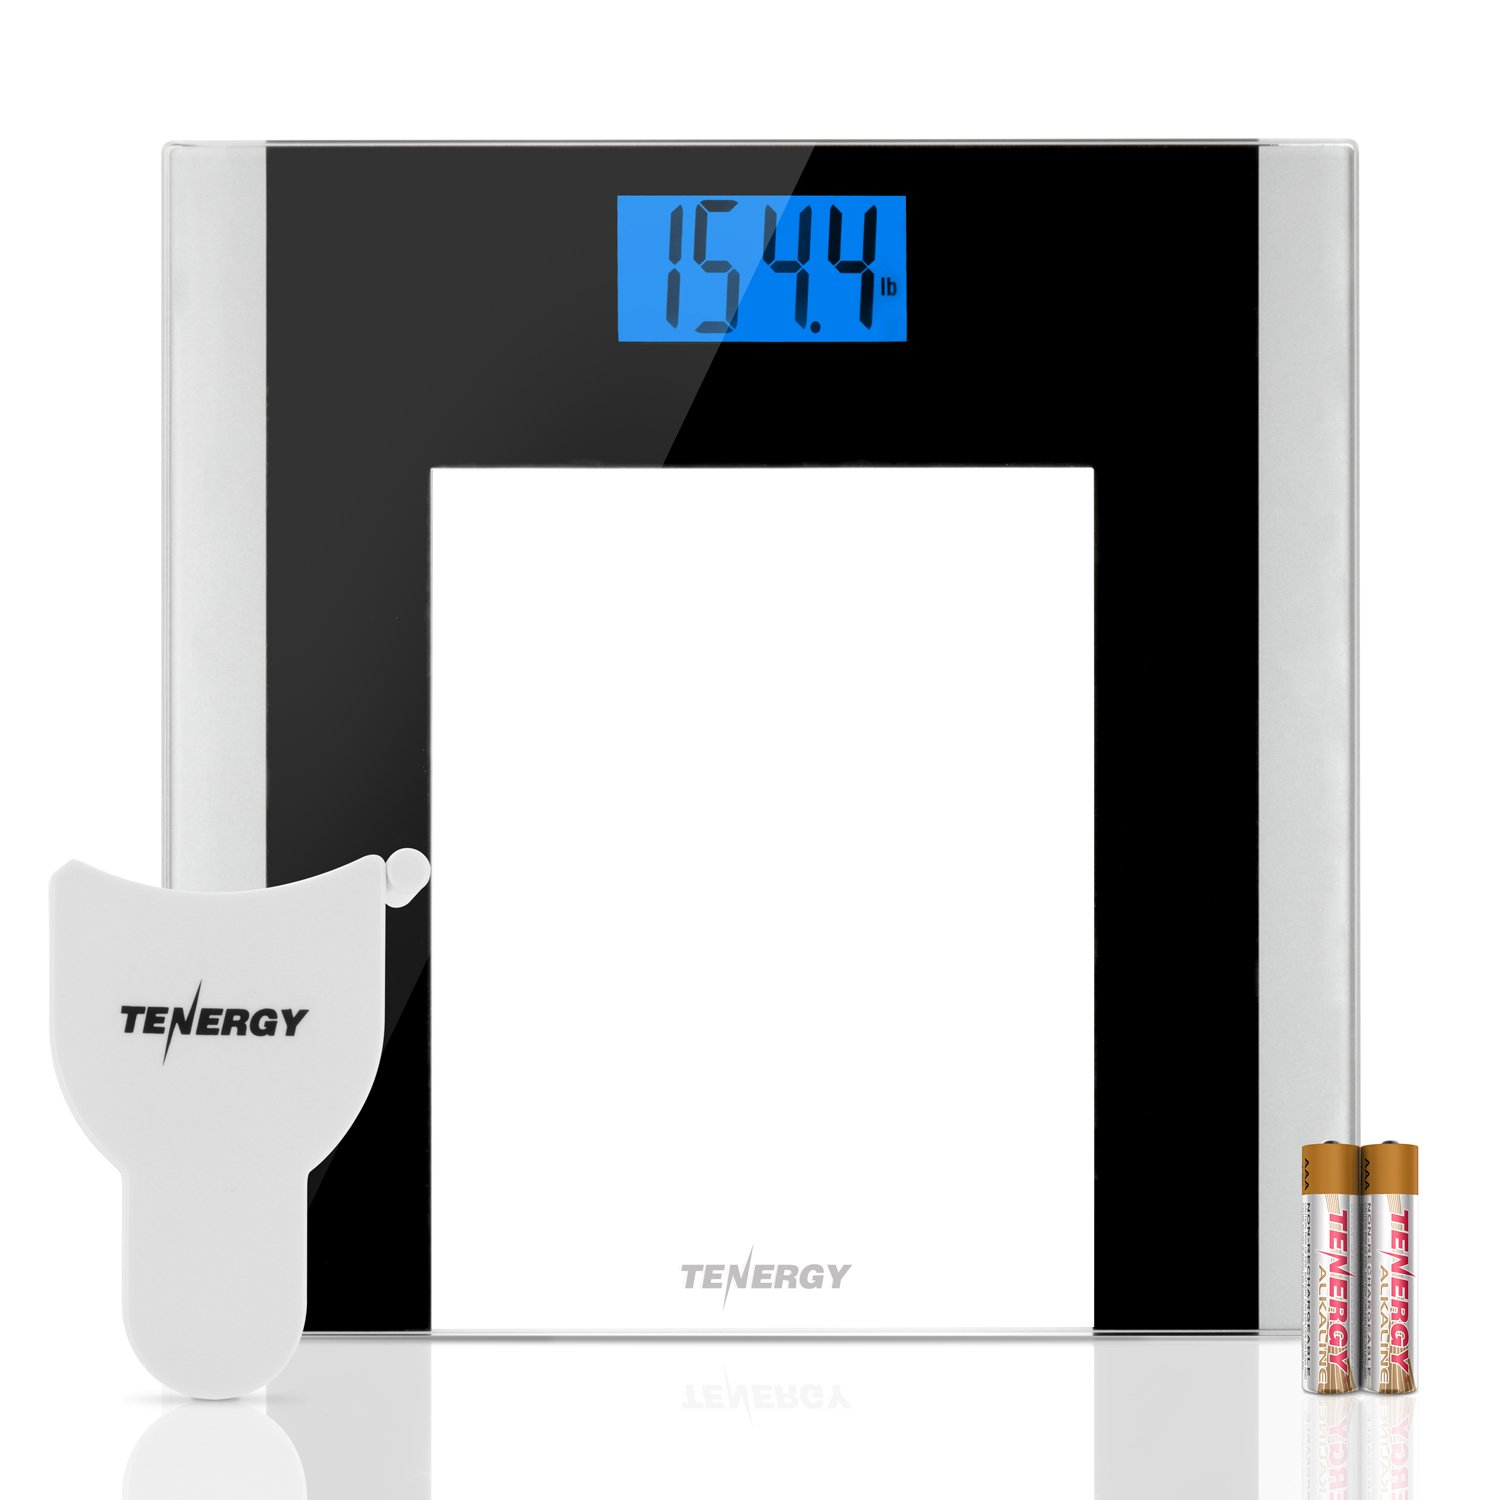 Tenergy Body Weight Scale with Step-On Technology, Tempered Glass Platform w/Backlit LCD, High Precision Digital Bathroom Scale, 400-Pound Capacity, Bonus Body Measuring Tape & Batteries Included by Tenergy